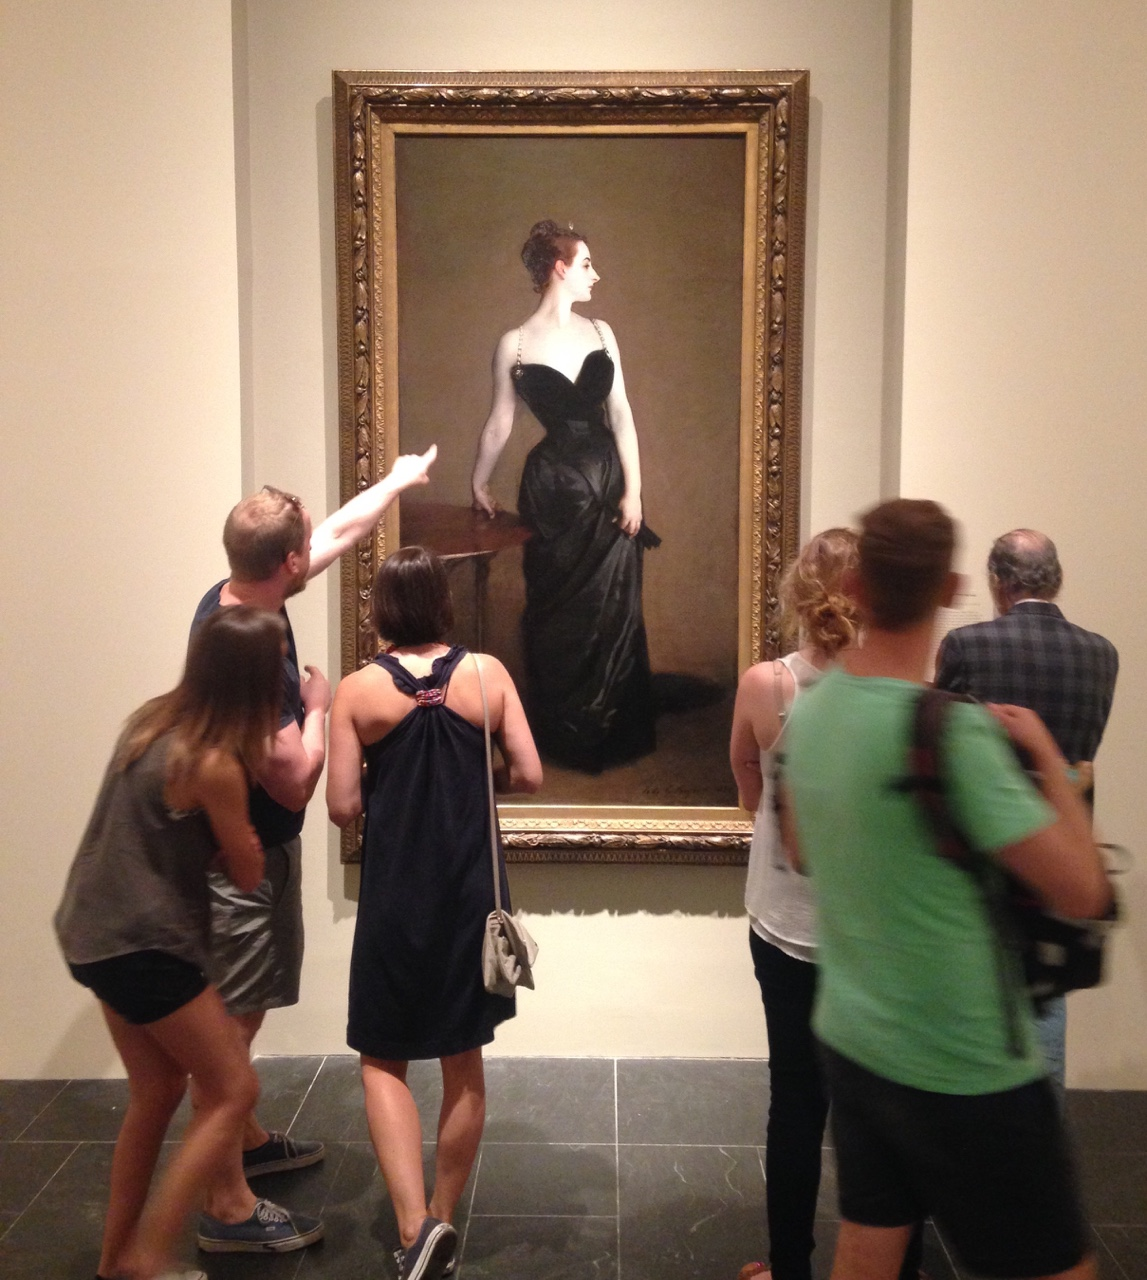 Madame X at the John Singer Sargent exhibition at The Metropolitan Museum of Art.